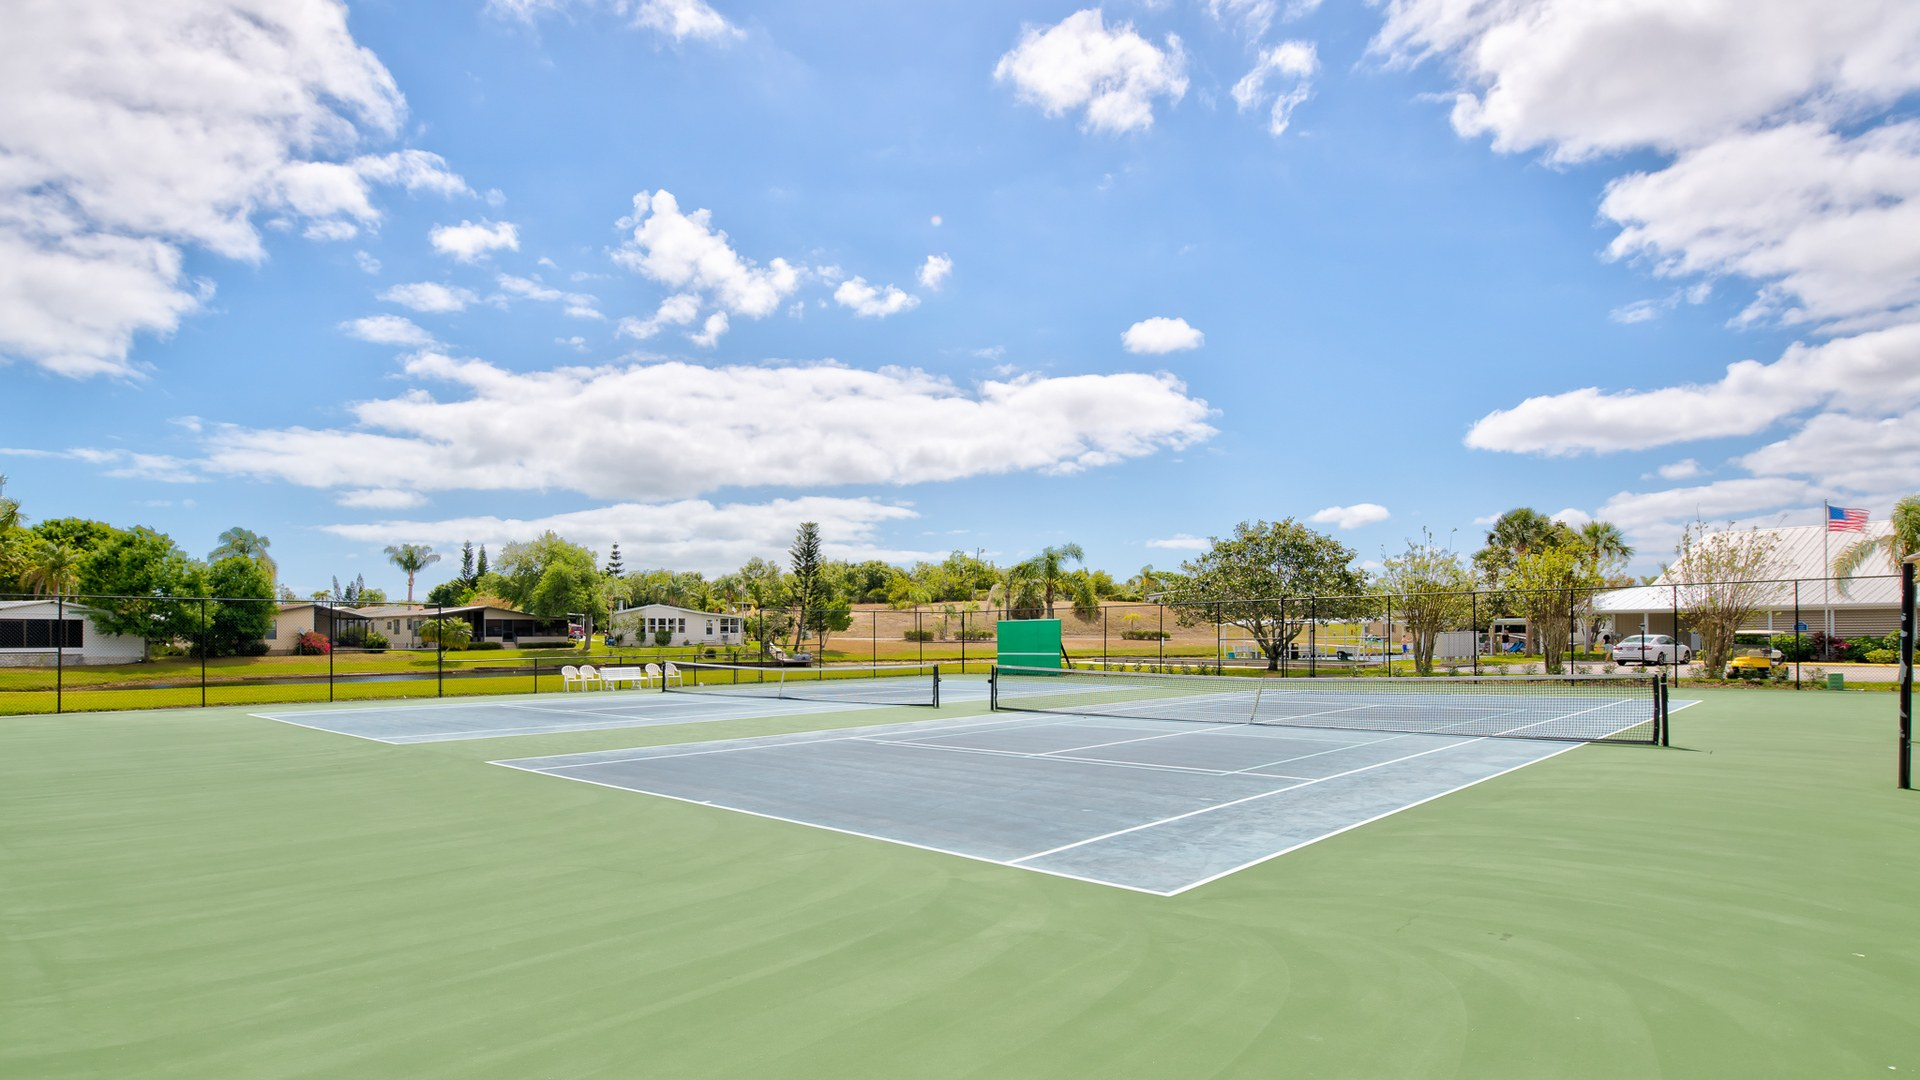 Park Place 55+ Manufactured Homes Community Tennis Courts in Sebastian, FL